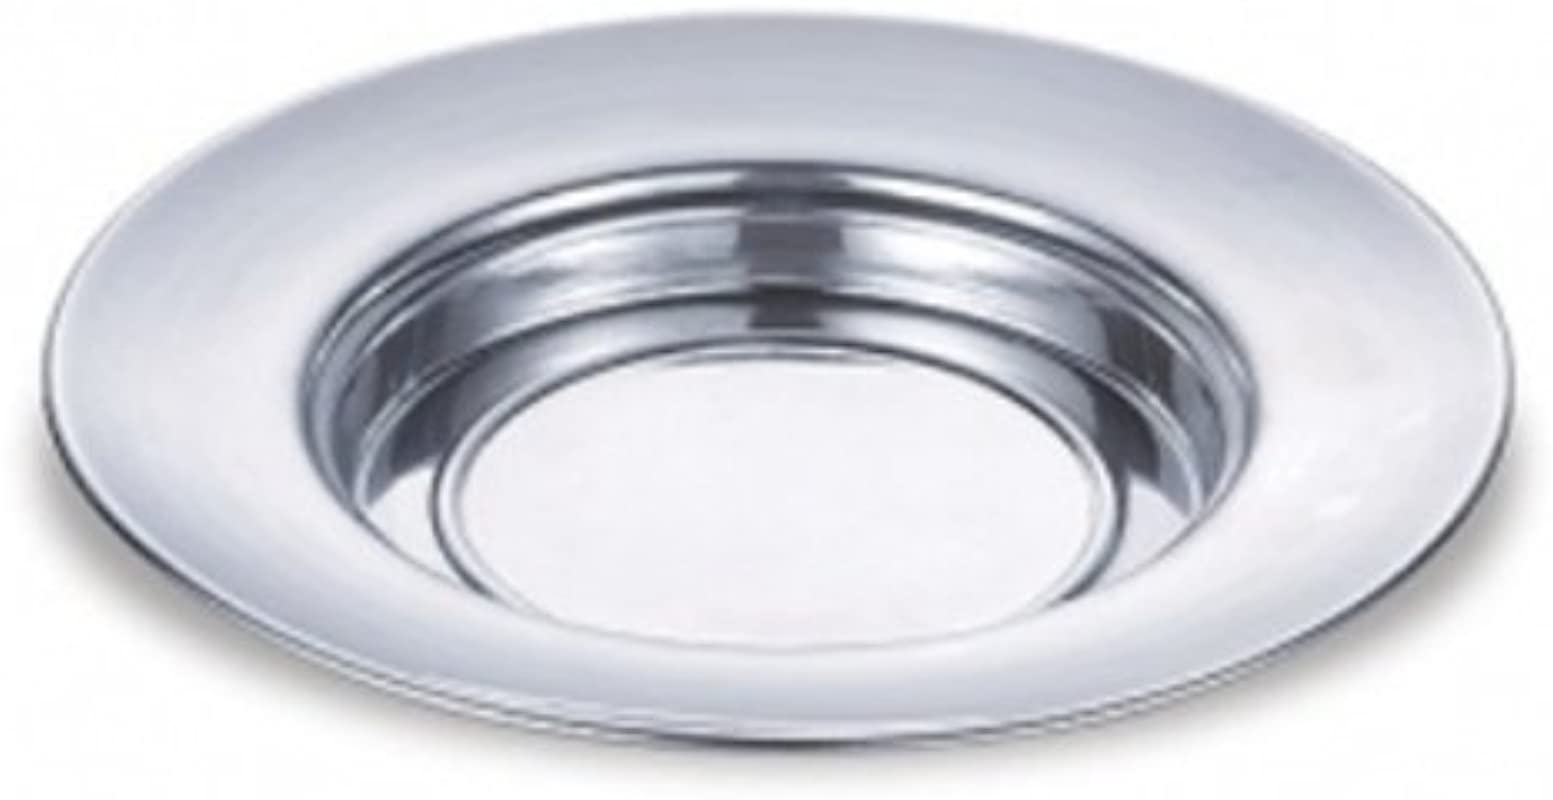 Polished Aluminum Bread Plate